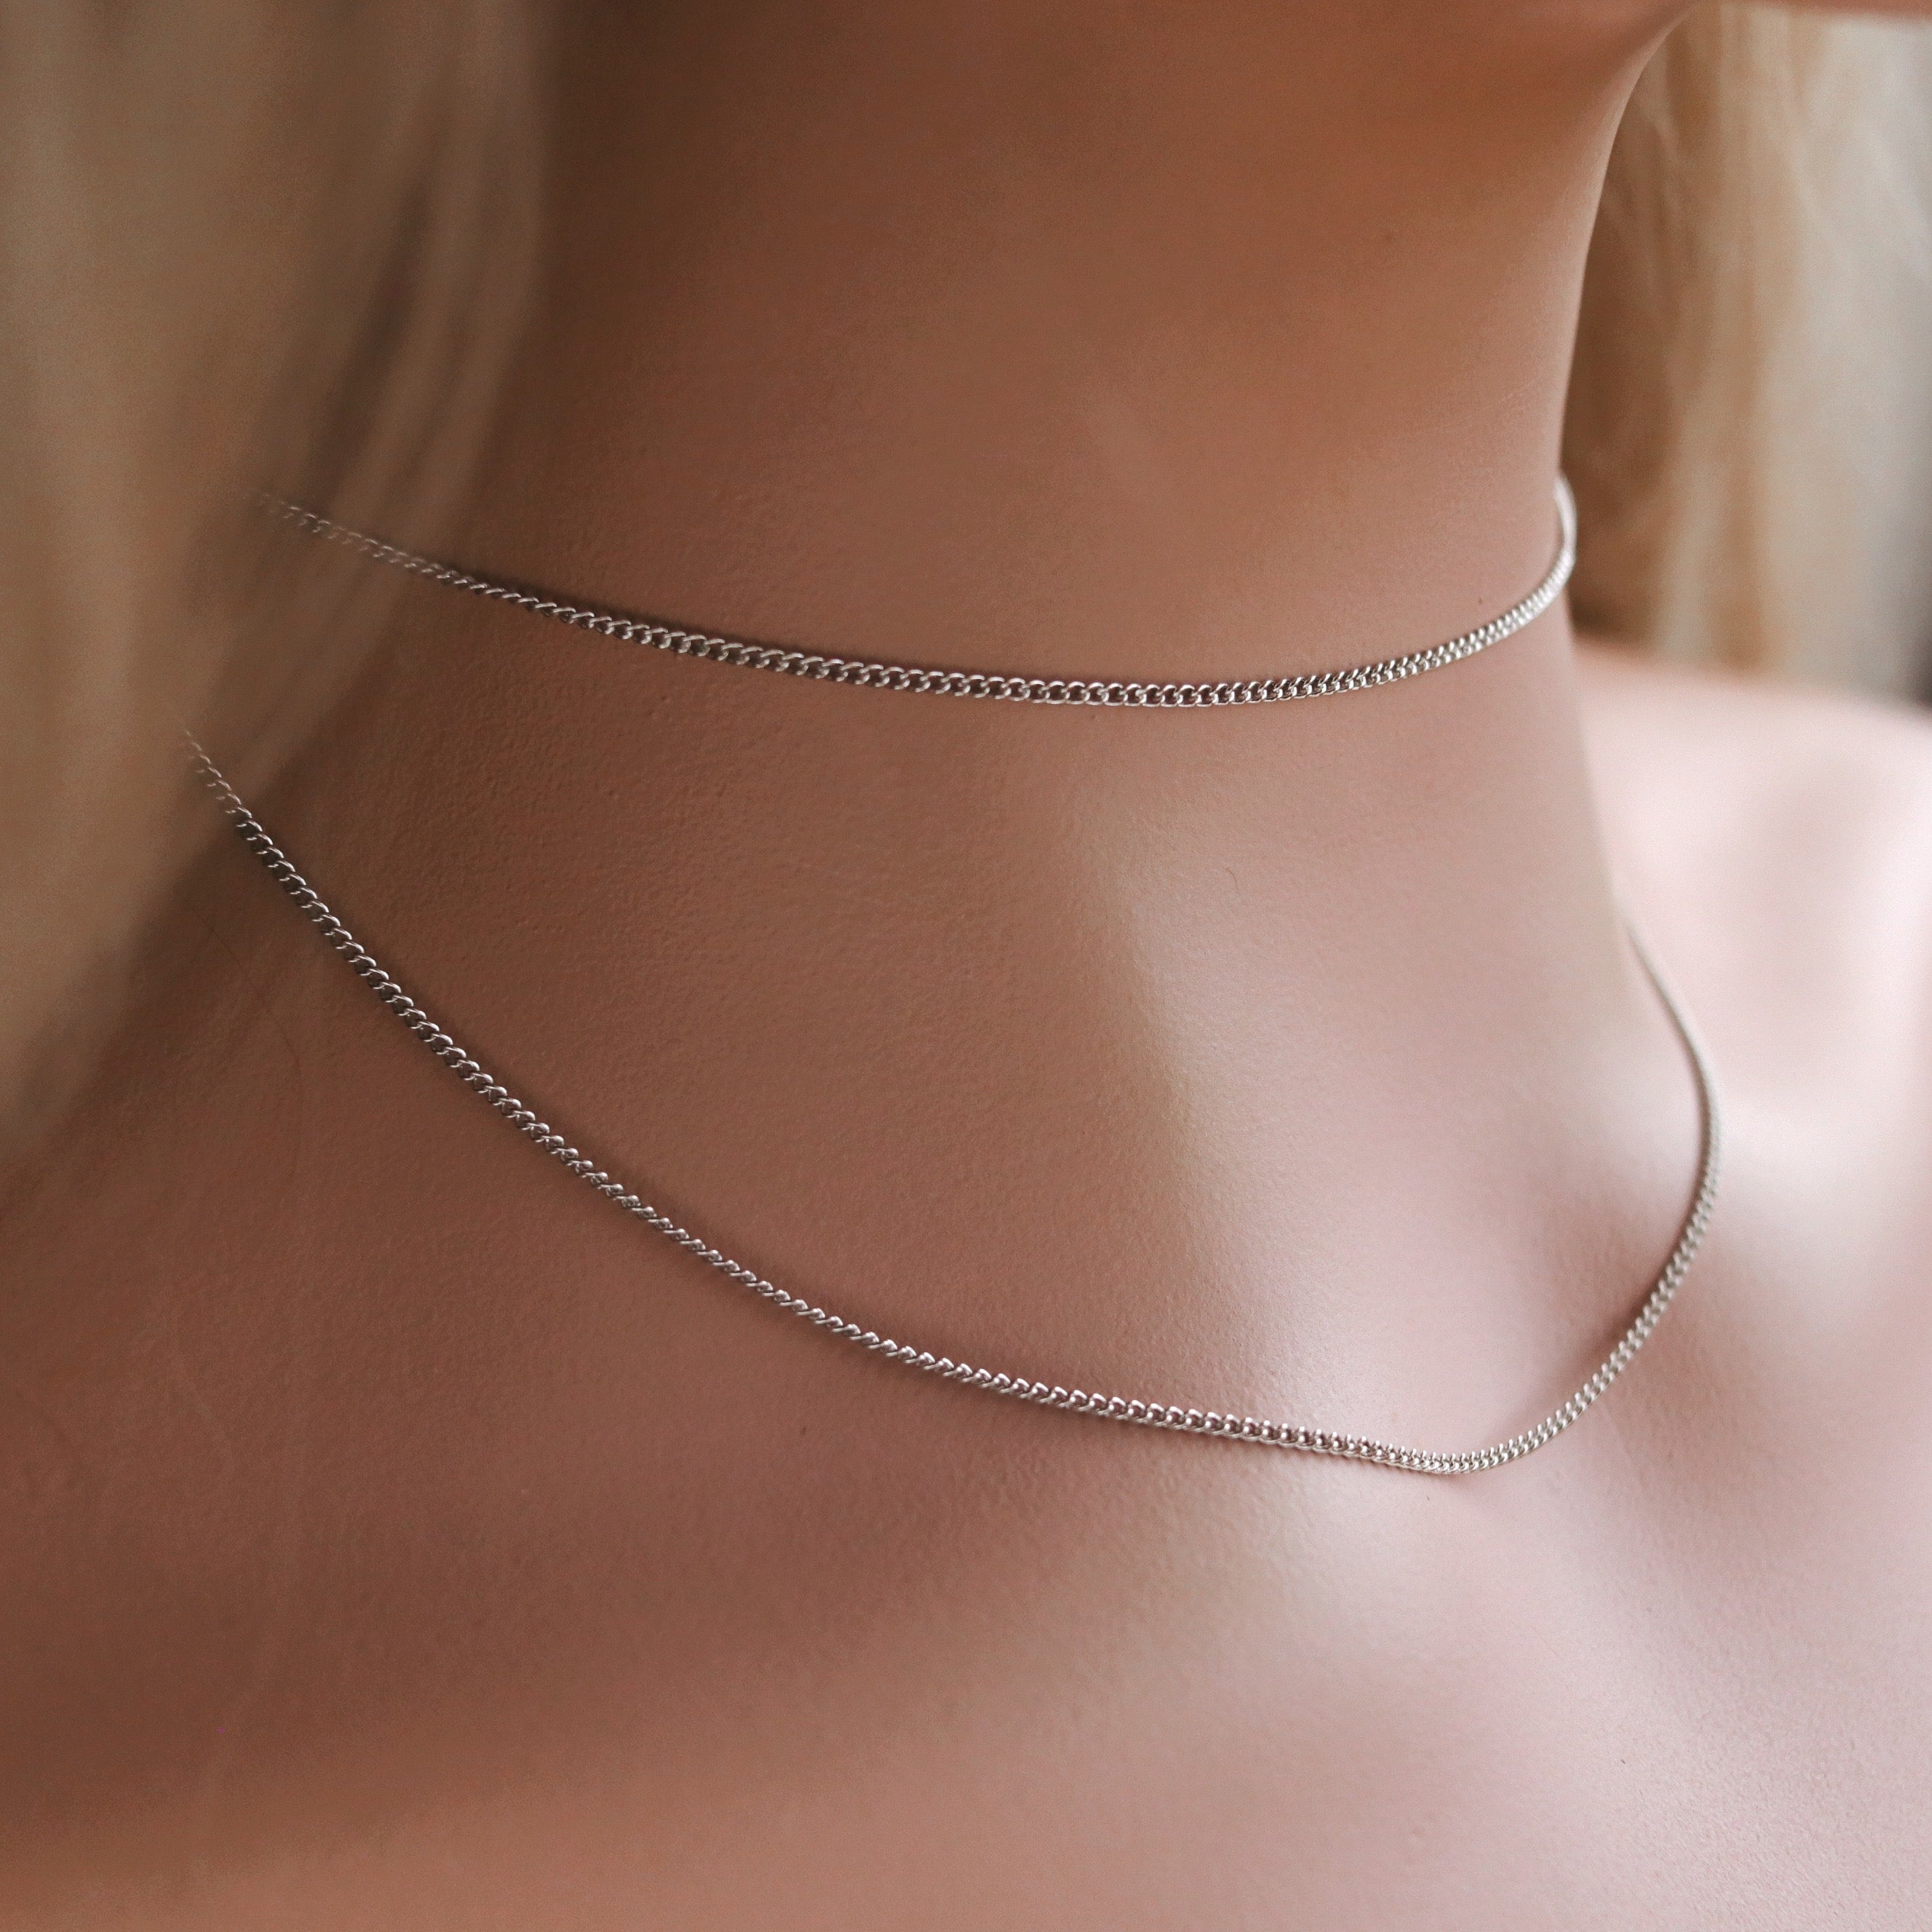 Crafty Curb Chain Choker Set [x12pcs] Silver Tone